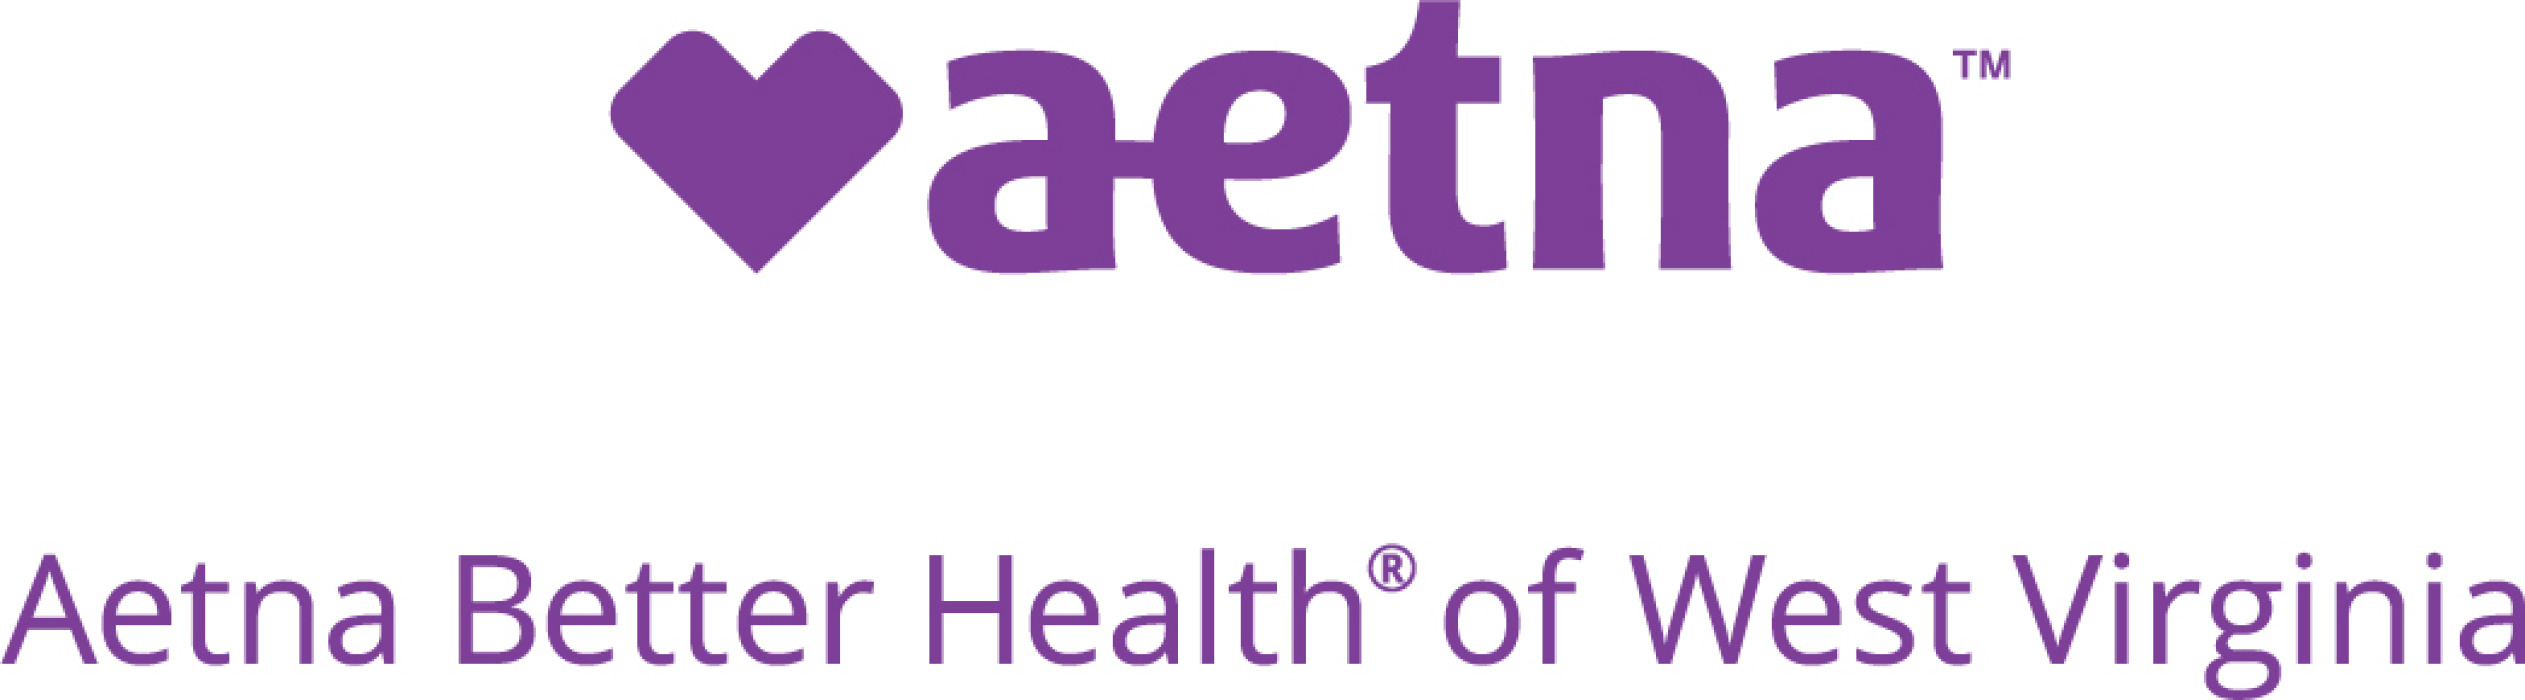 Aetna Better Health of West Virginia logo